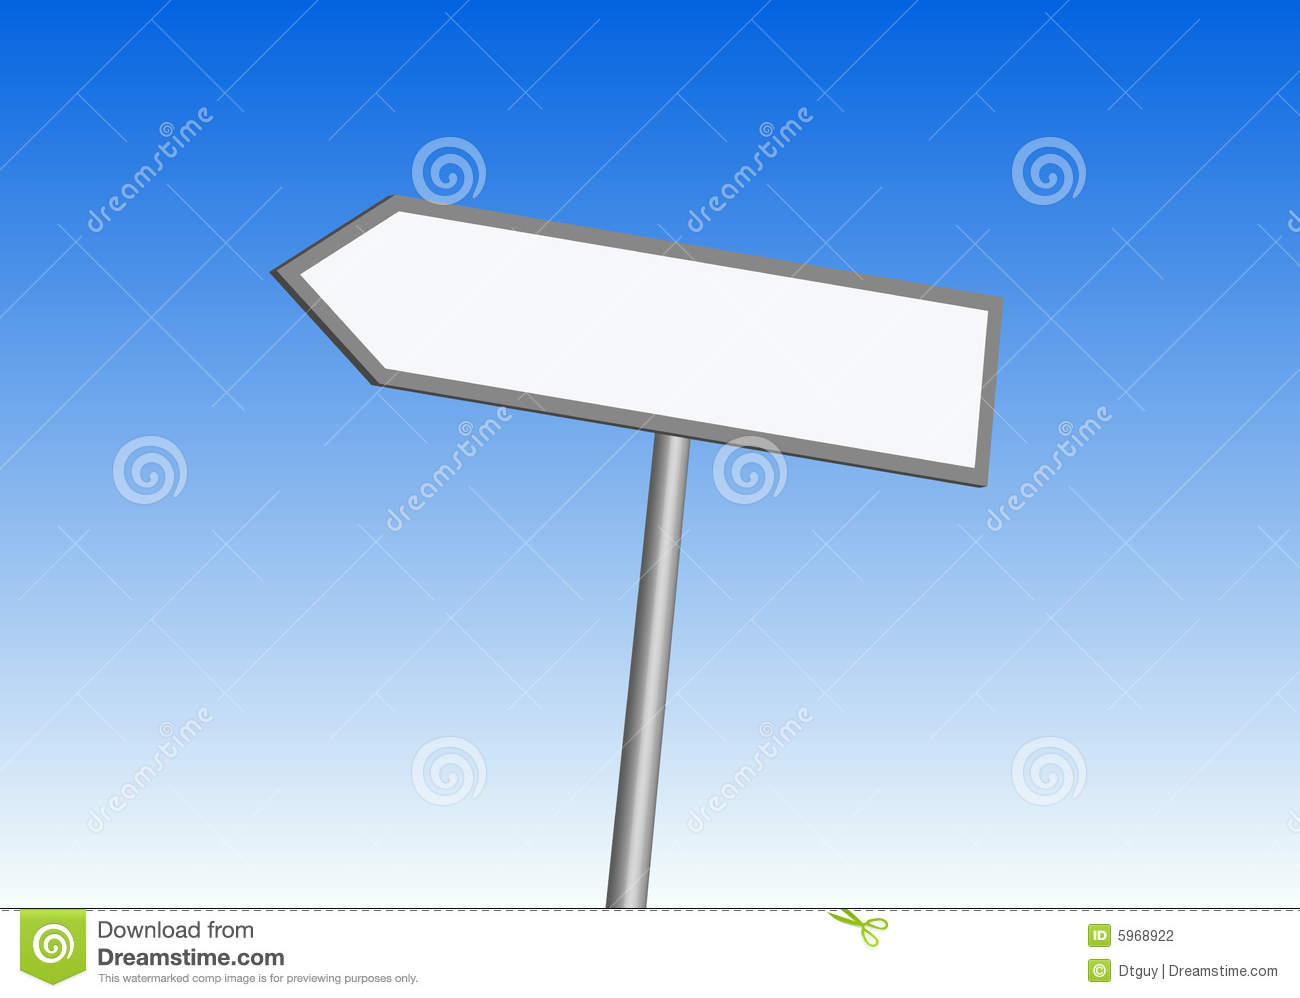 Signaux de direction